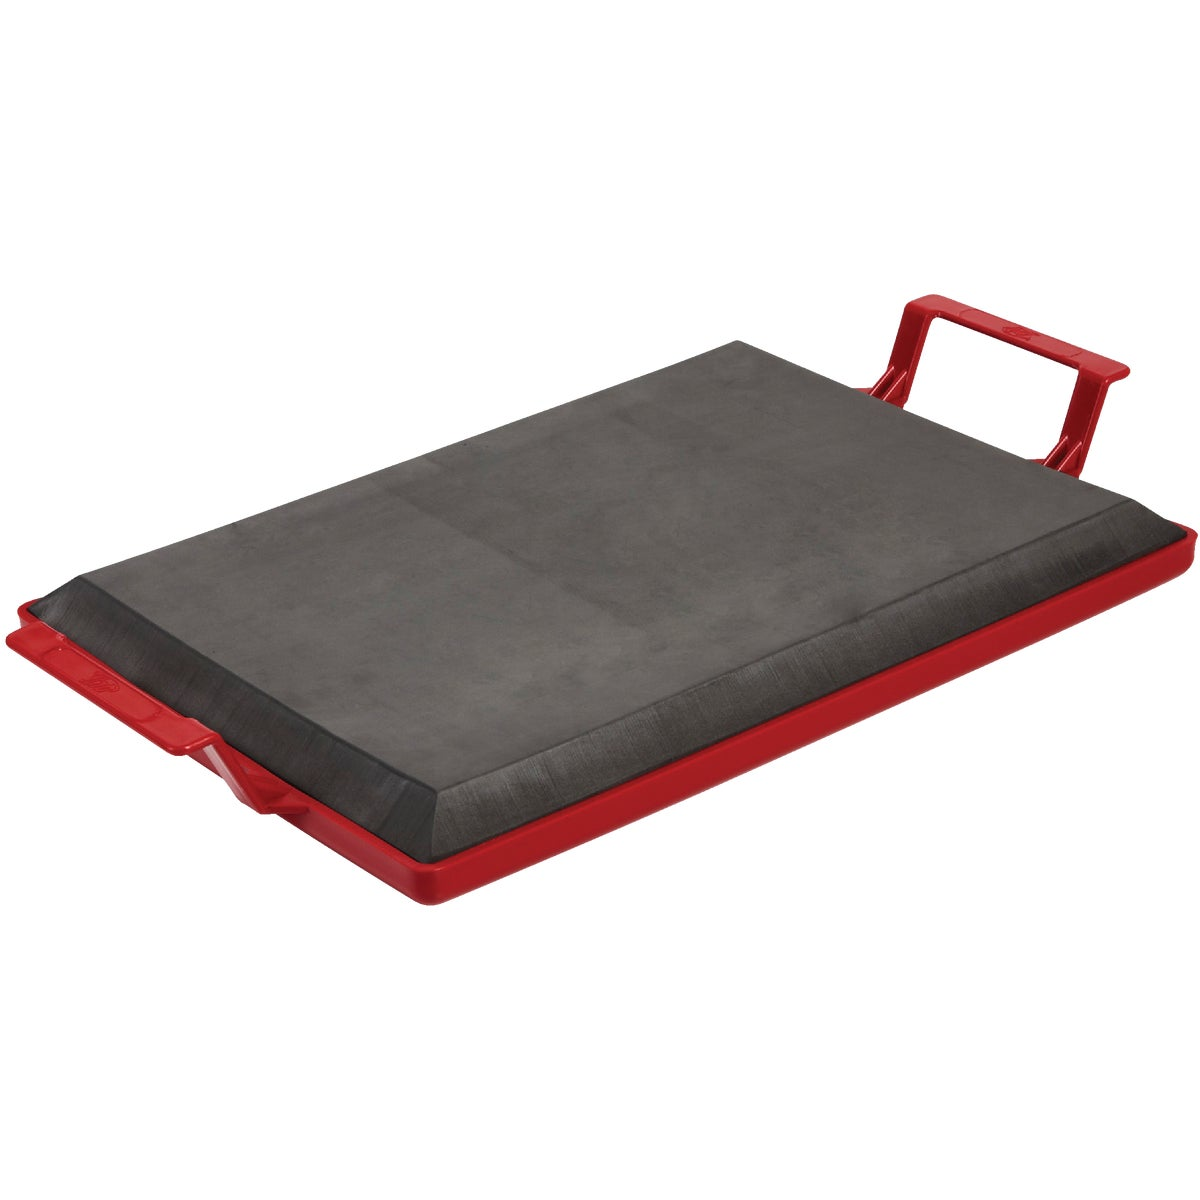 KB451 KNEELER BOARD